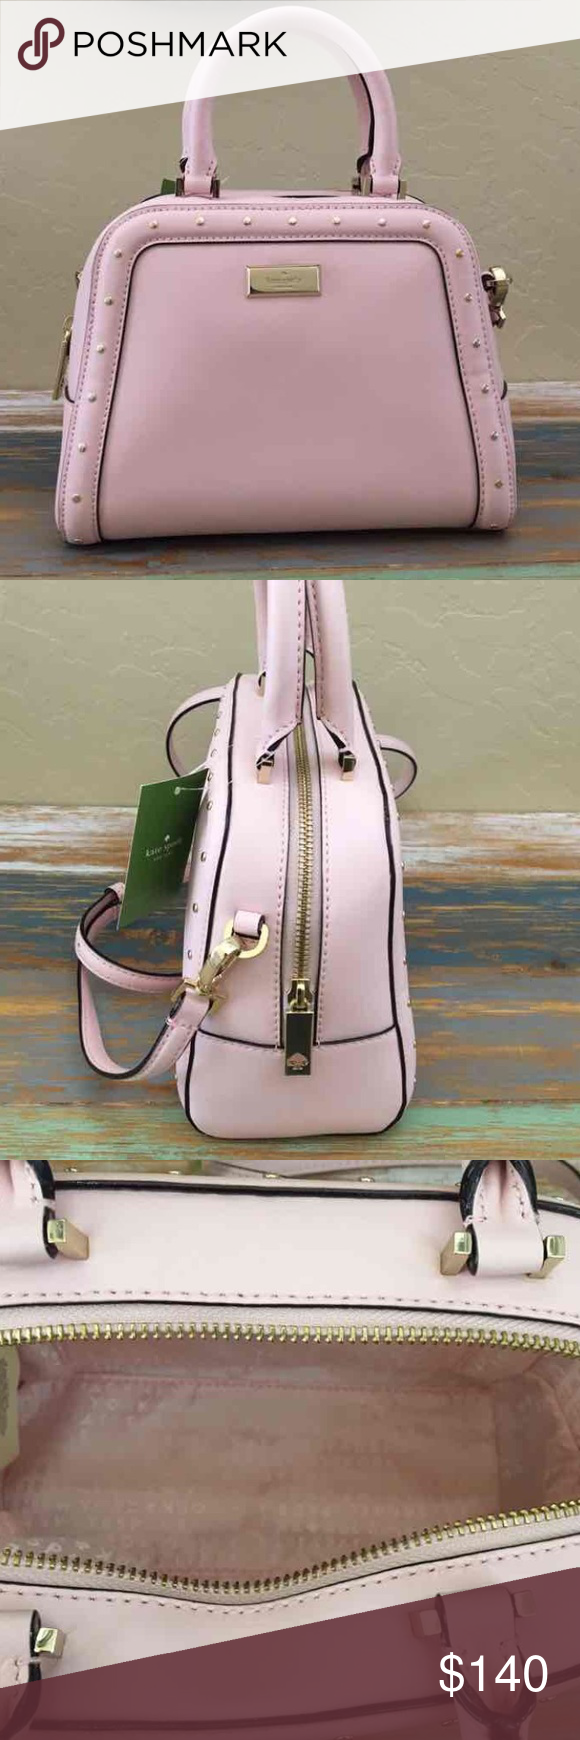 🌷NWT KATE SPADE SMALL ROCKI HELENA 100% Authentic - Brand new with tags $328  No dust bag included  Style: WKRU3558     Color: Posypink   •Kate Spade crossbody handbag with gold toned hardware •Dual handles with drop of approx. 3.5 inches •Detachable, adjustable strap with a maximum drop of approx. 22 inches •Interior features 1 slip pocket •Approx. dimensions: 8.75 in L x 6.75 in H x 4 in W kate spade Bags Crossbody Bags